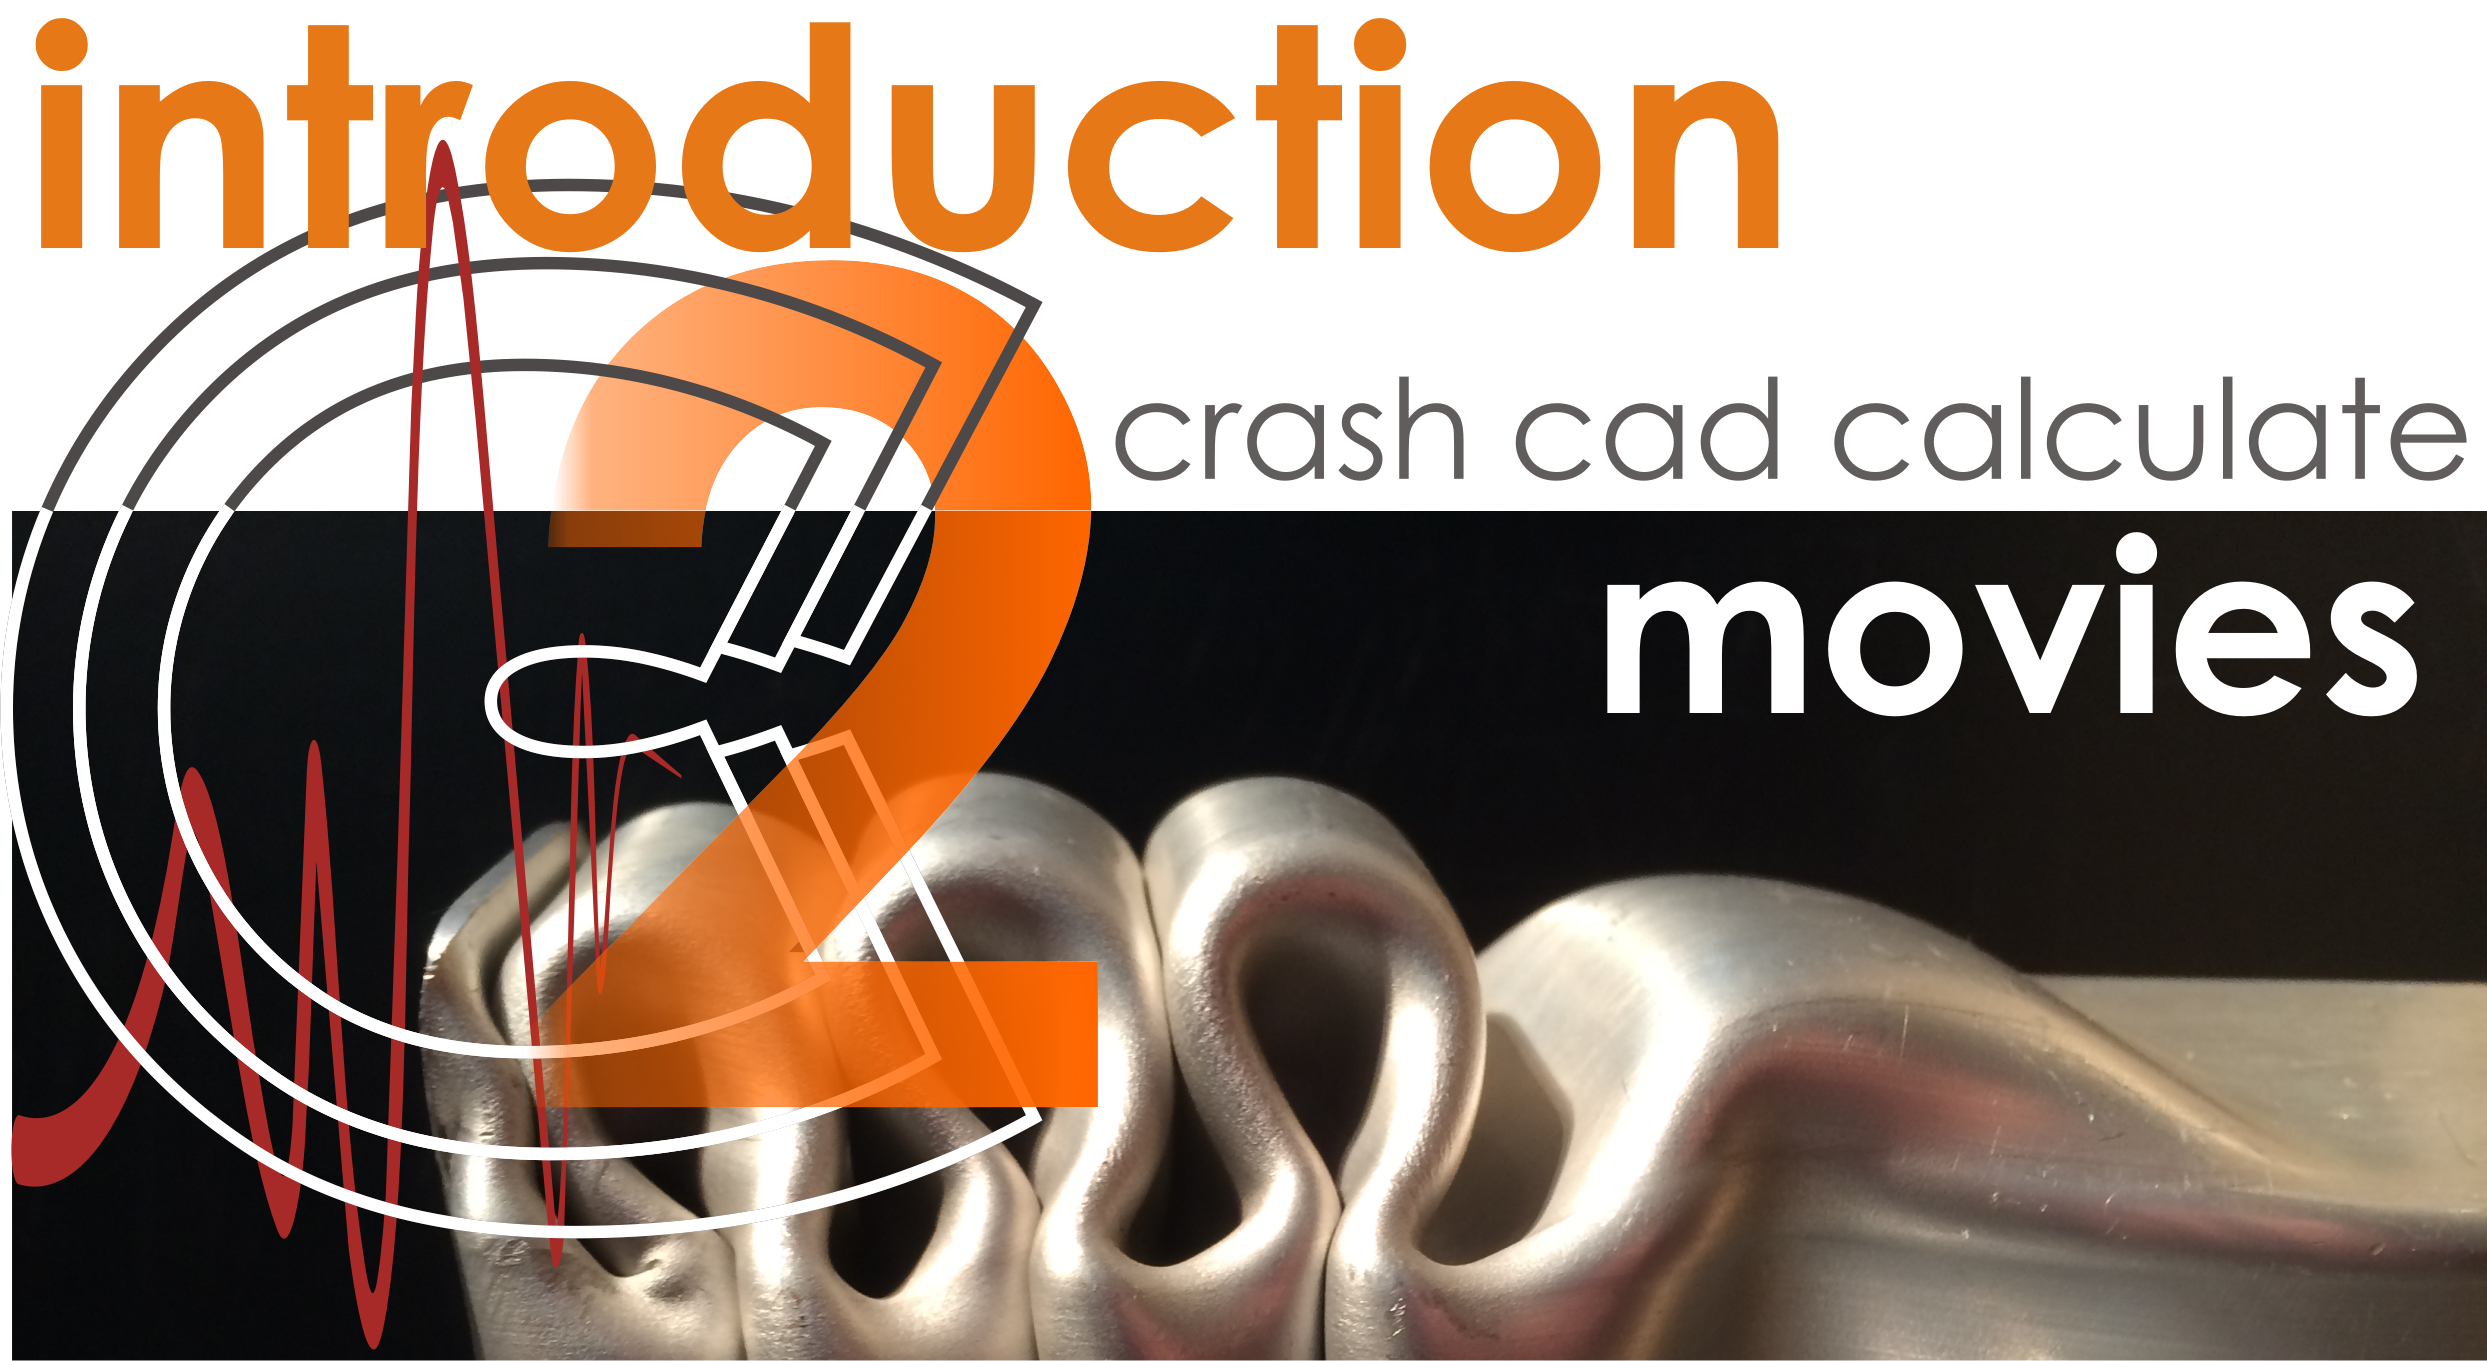 Introduction to Crash Cad Calculate